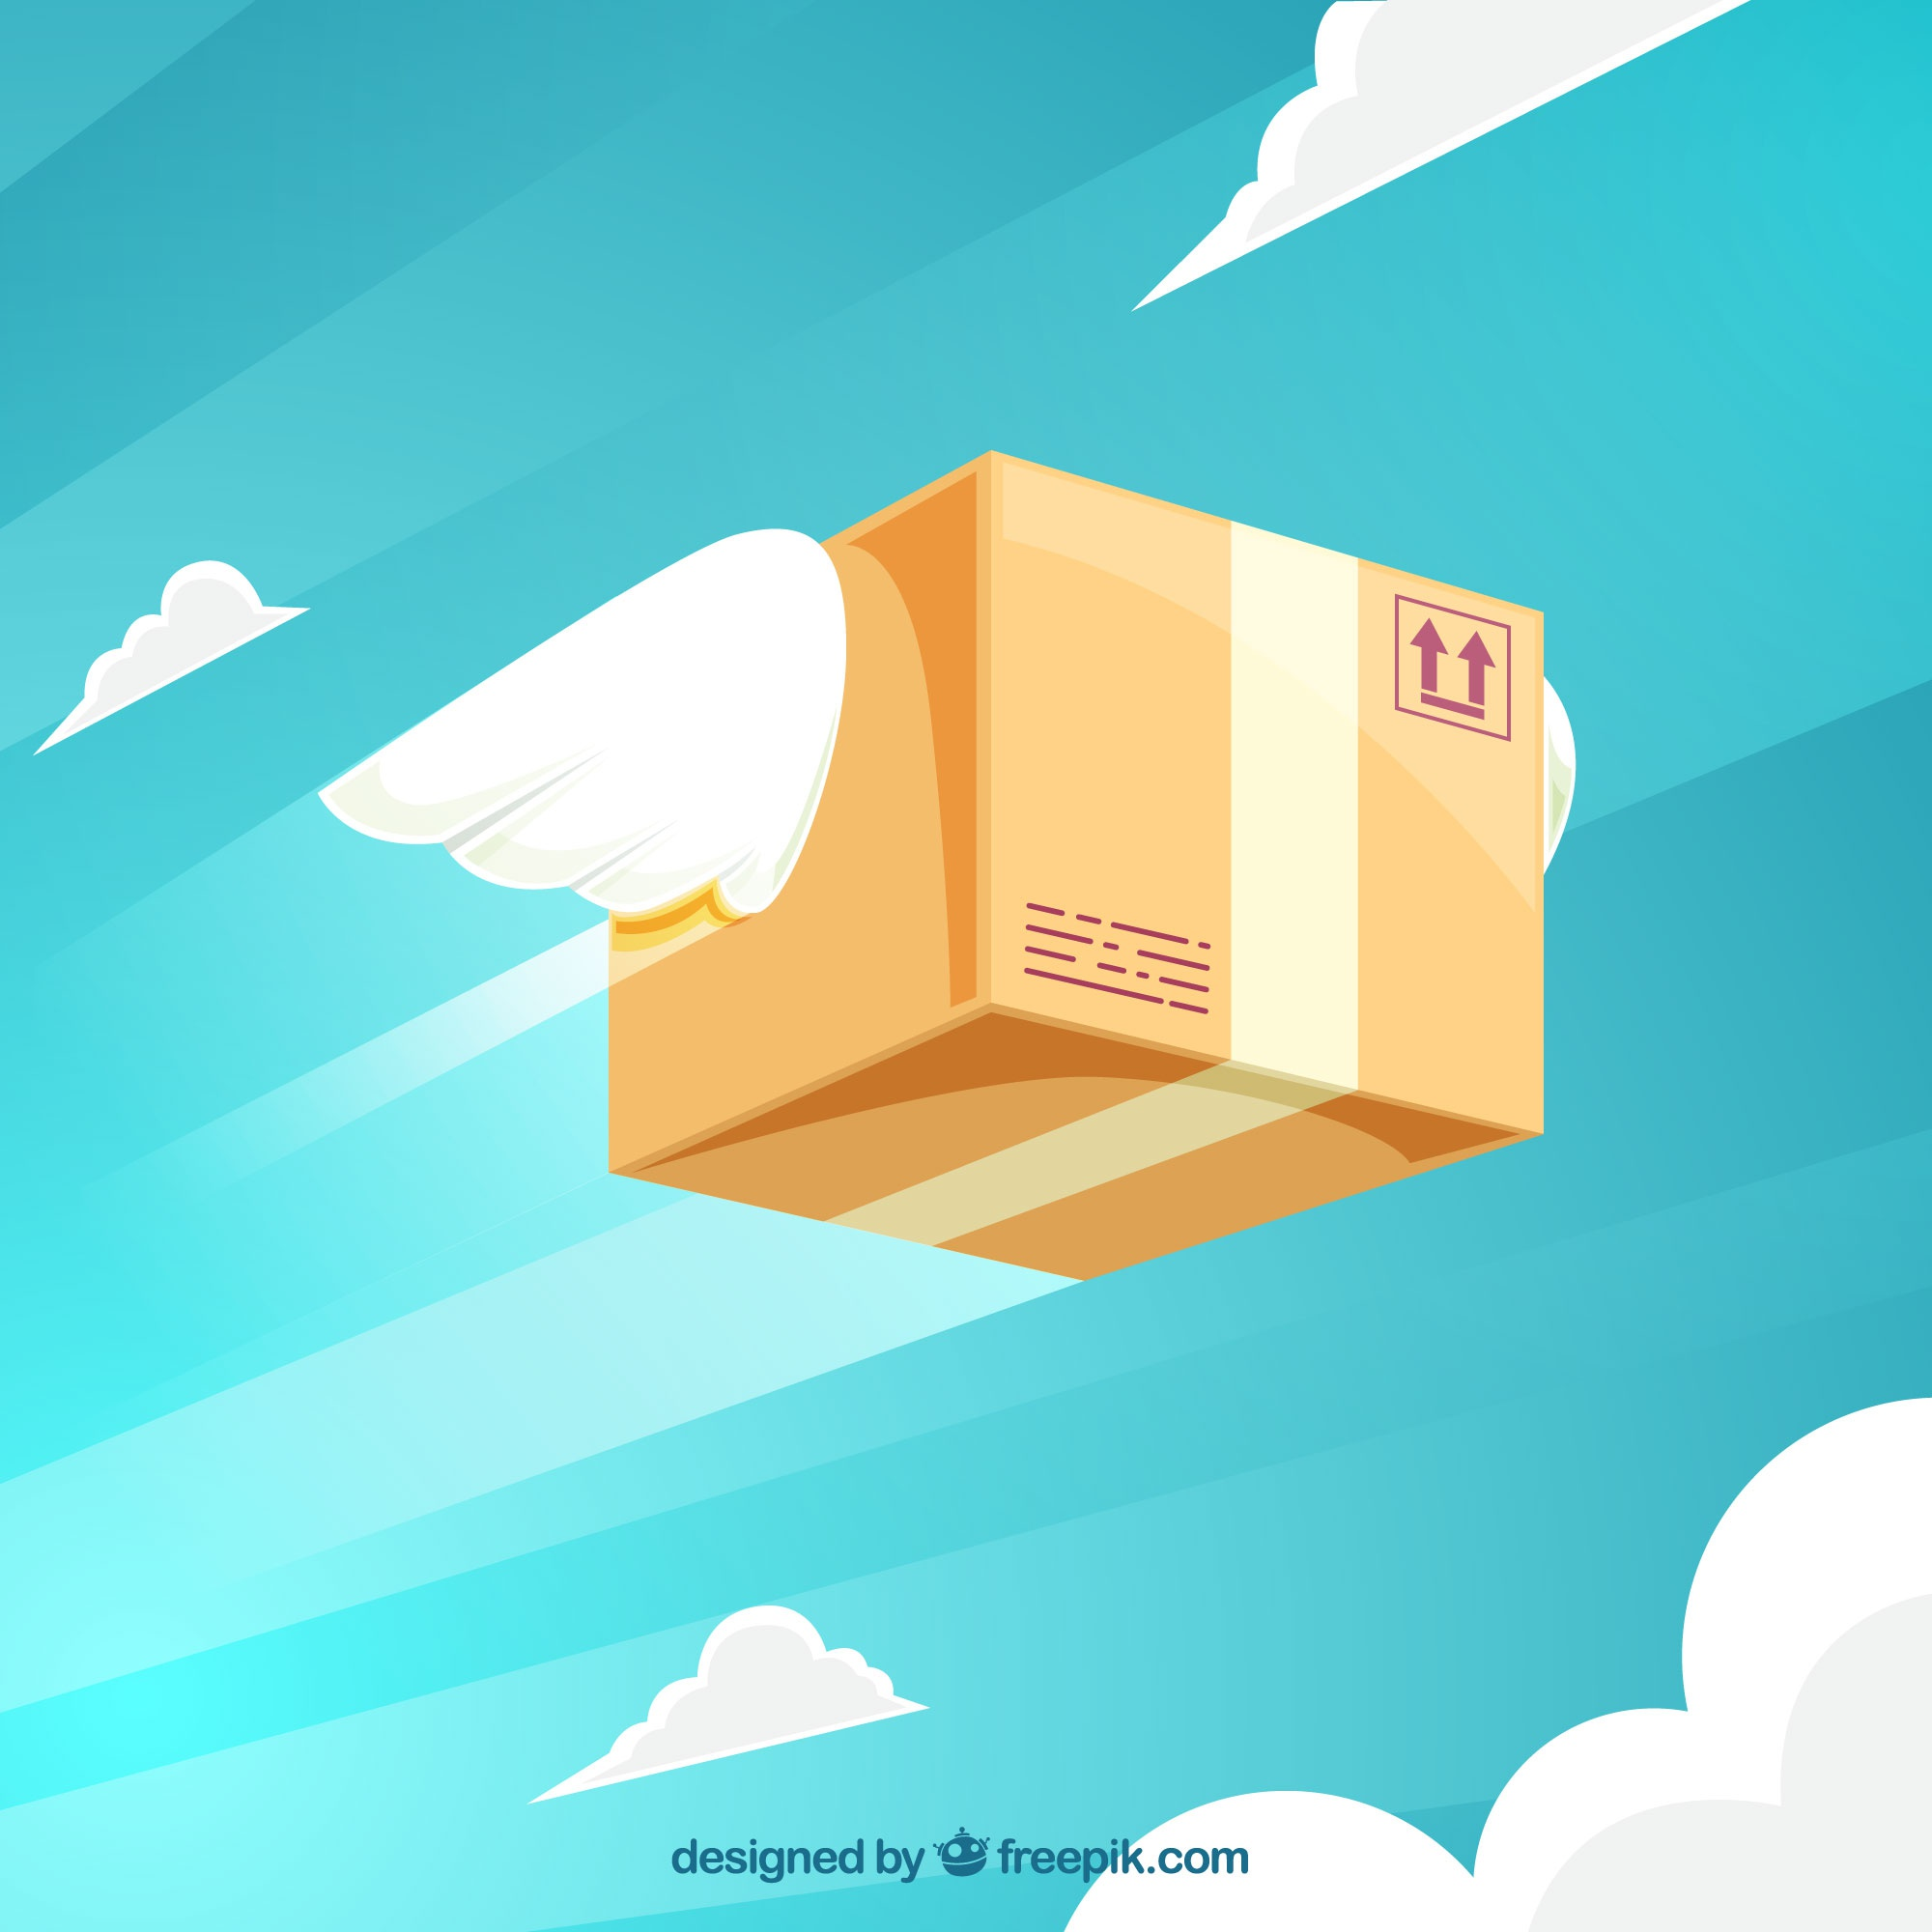 Flat carton box flying with wings